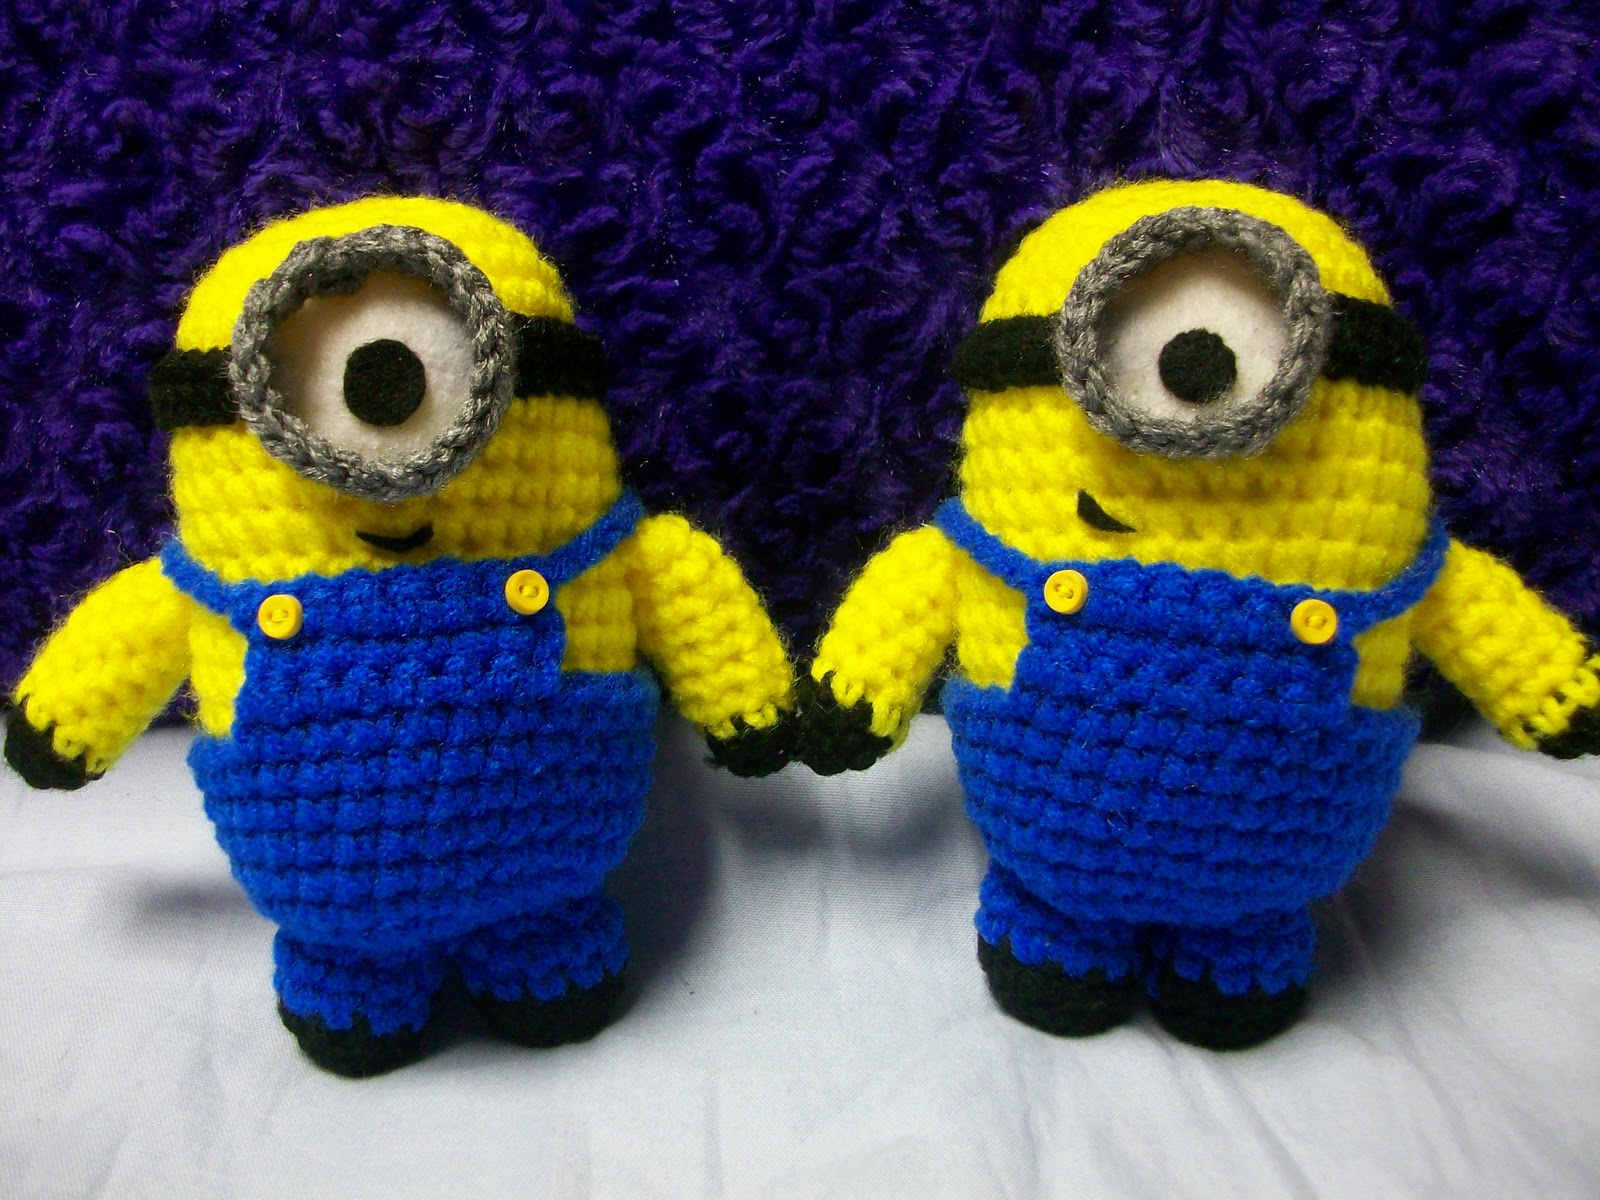 Crochet Me : despicable me minion crochet pattern free